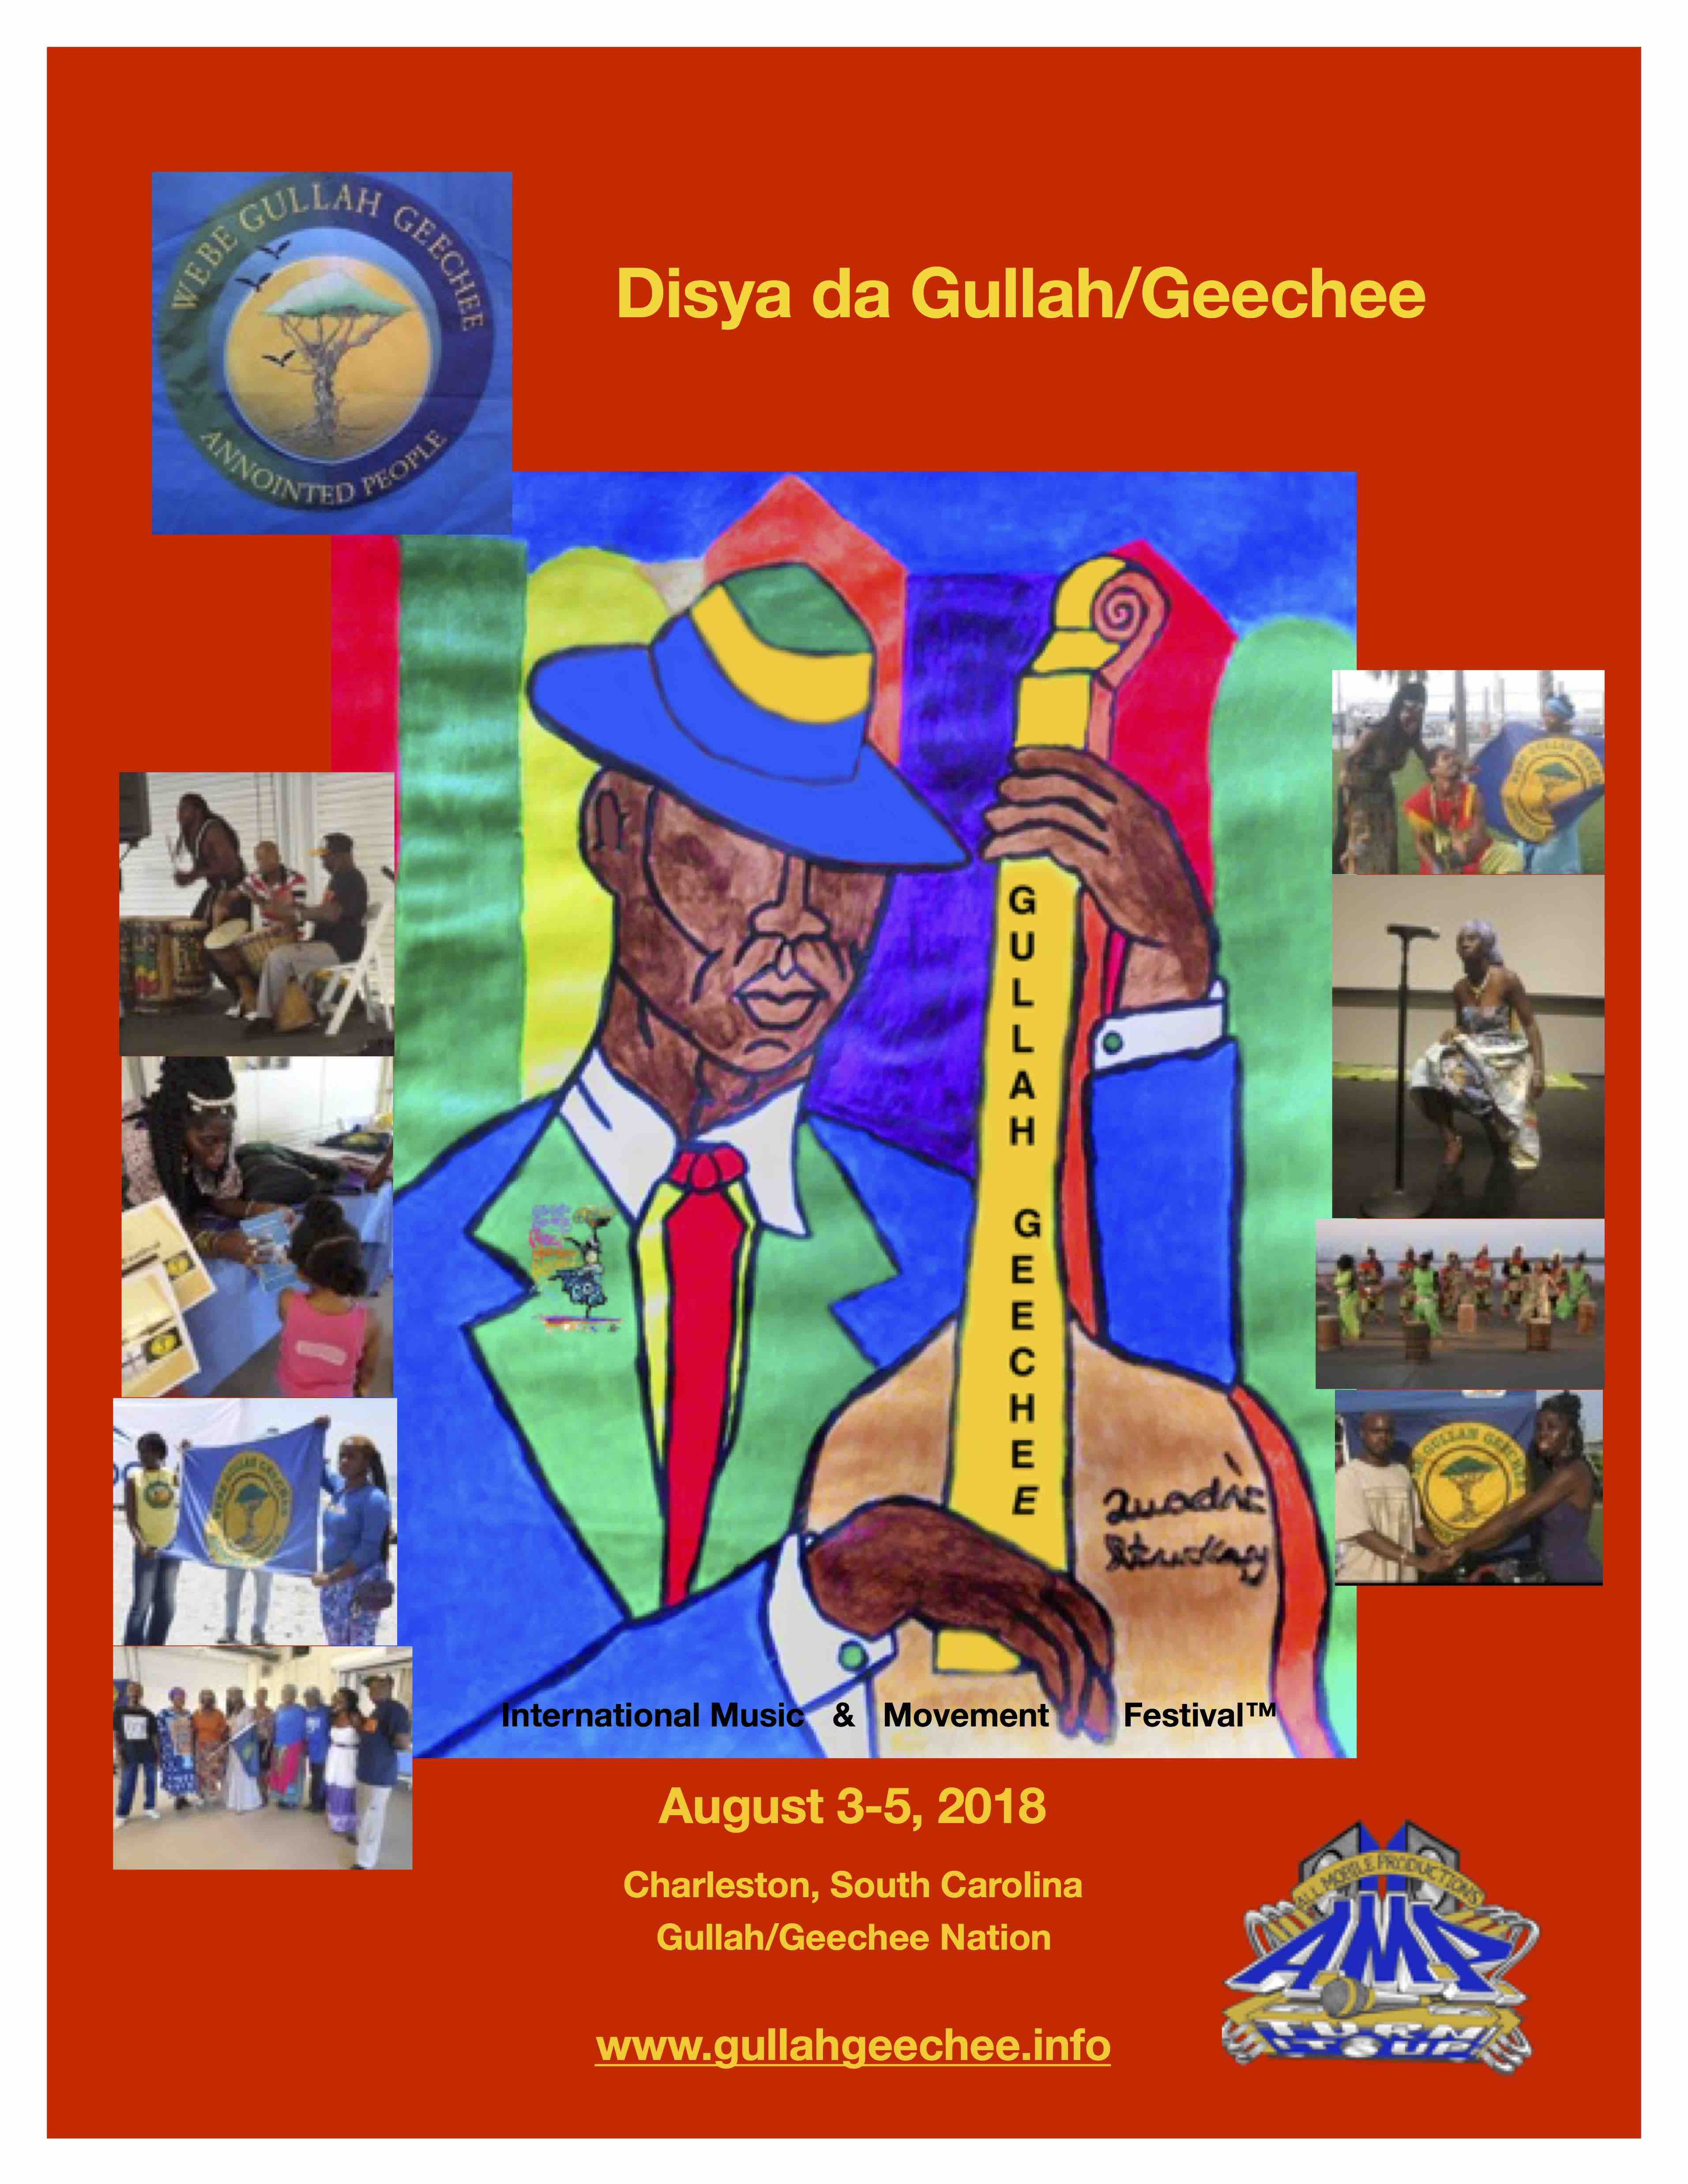 Gullah/Geechee Nation International Music & Movement Festival 2018 Flyer